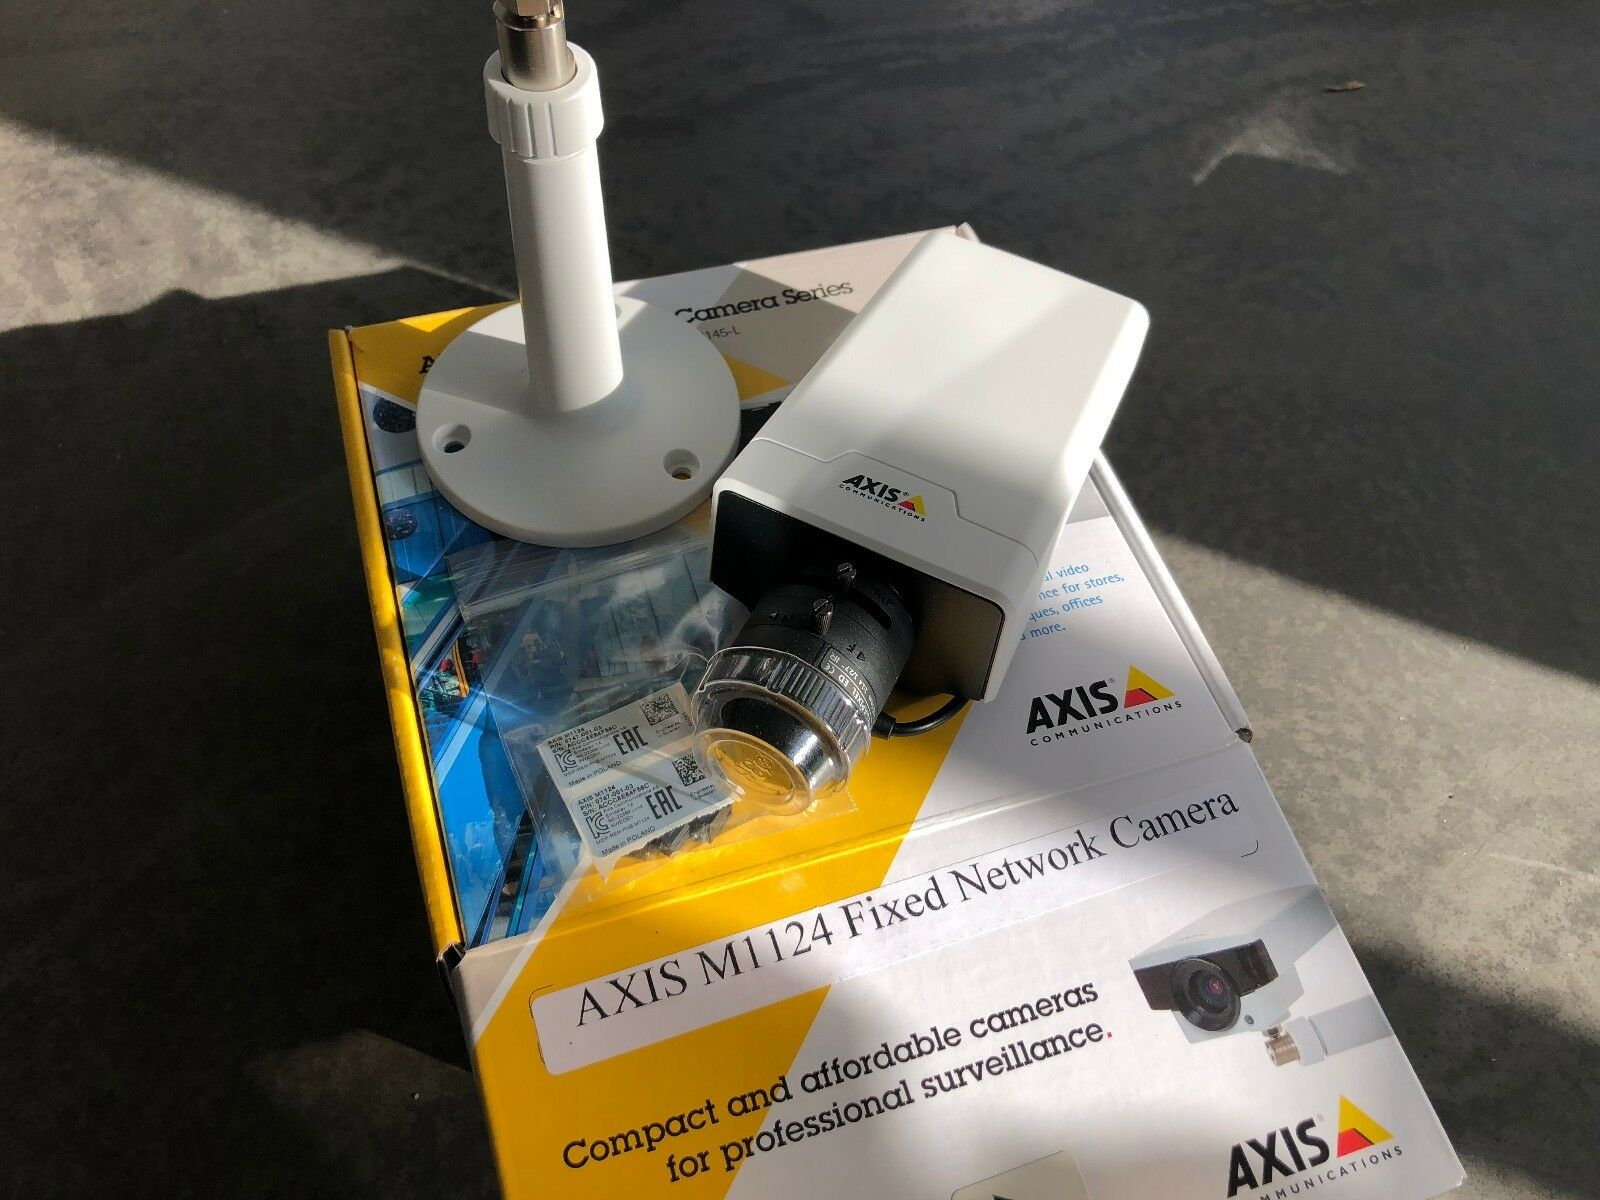 AXIS M1124 Network Camera Windows 8 Drivers Download (2019)